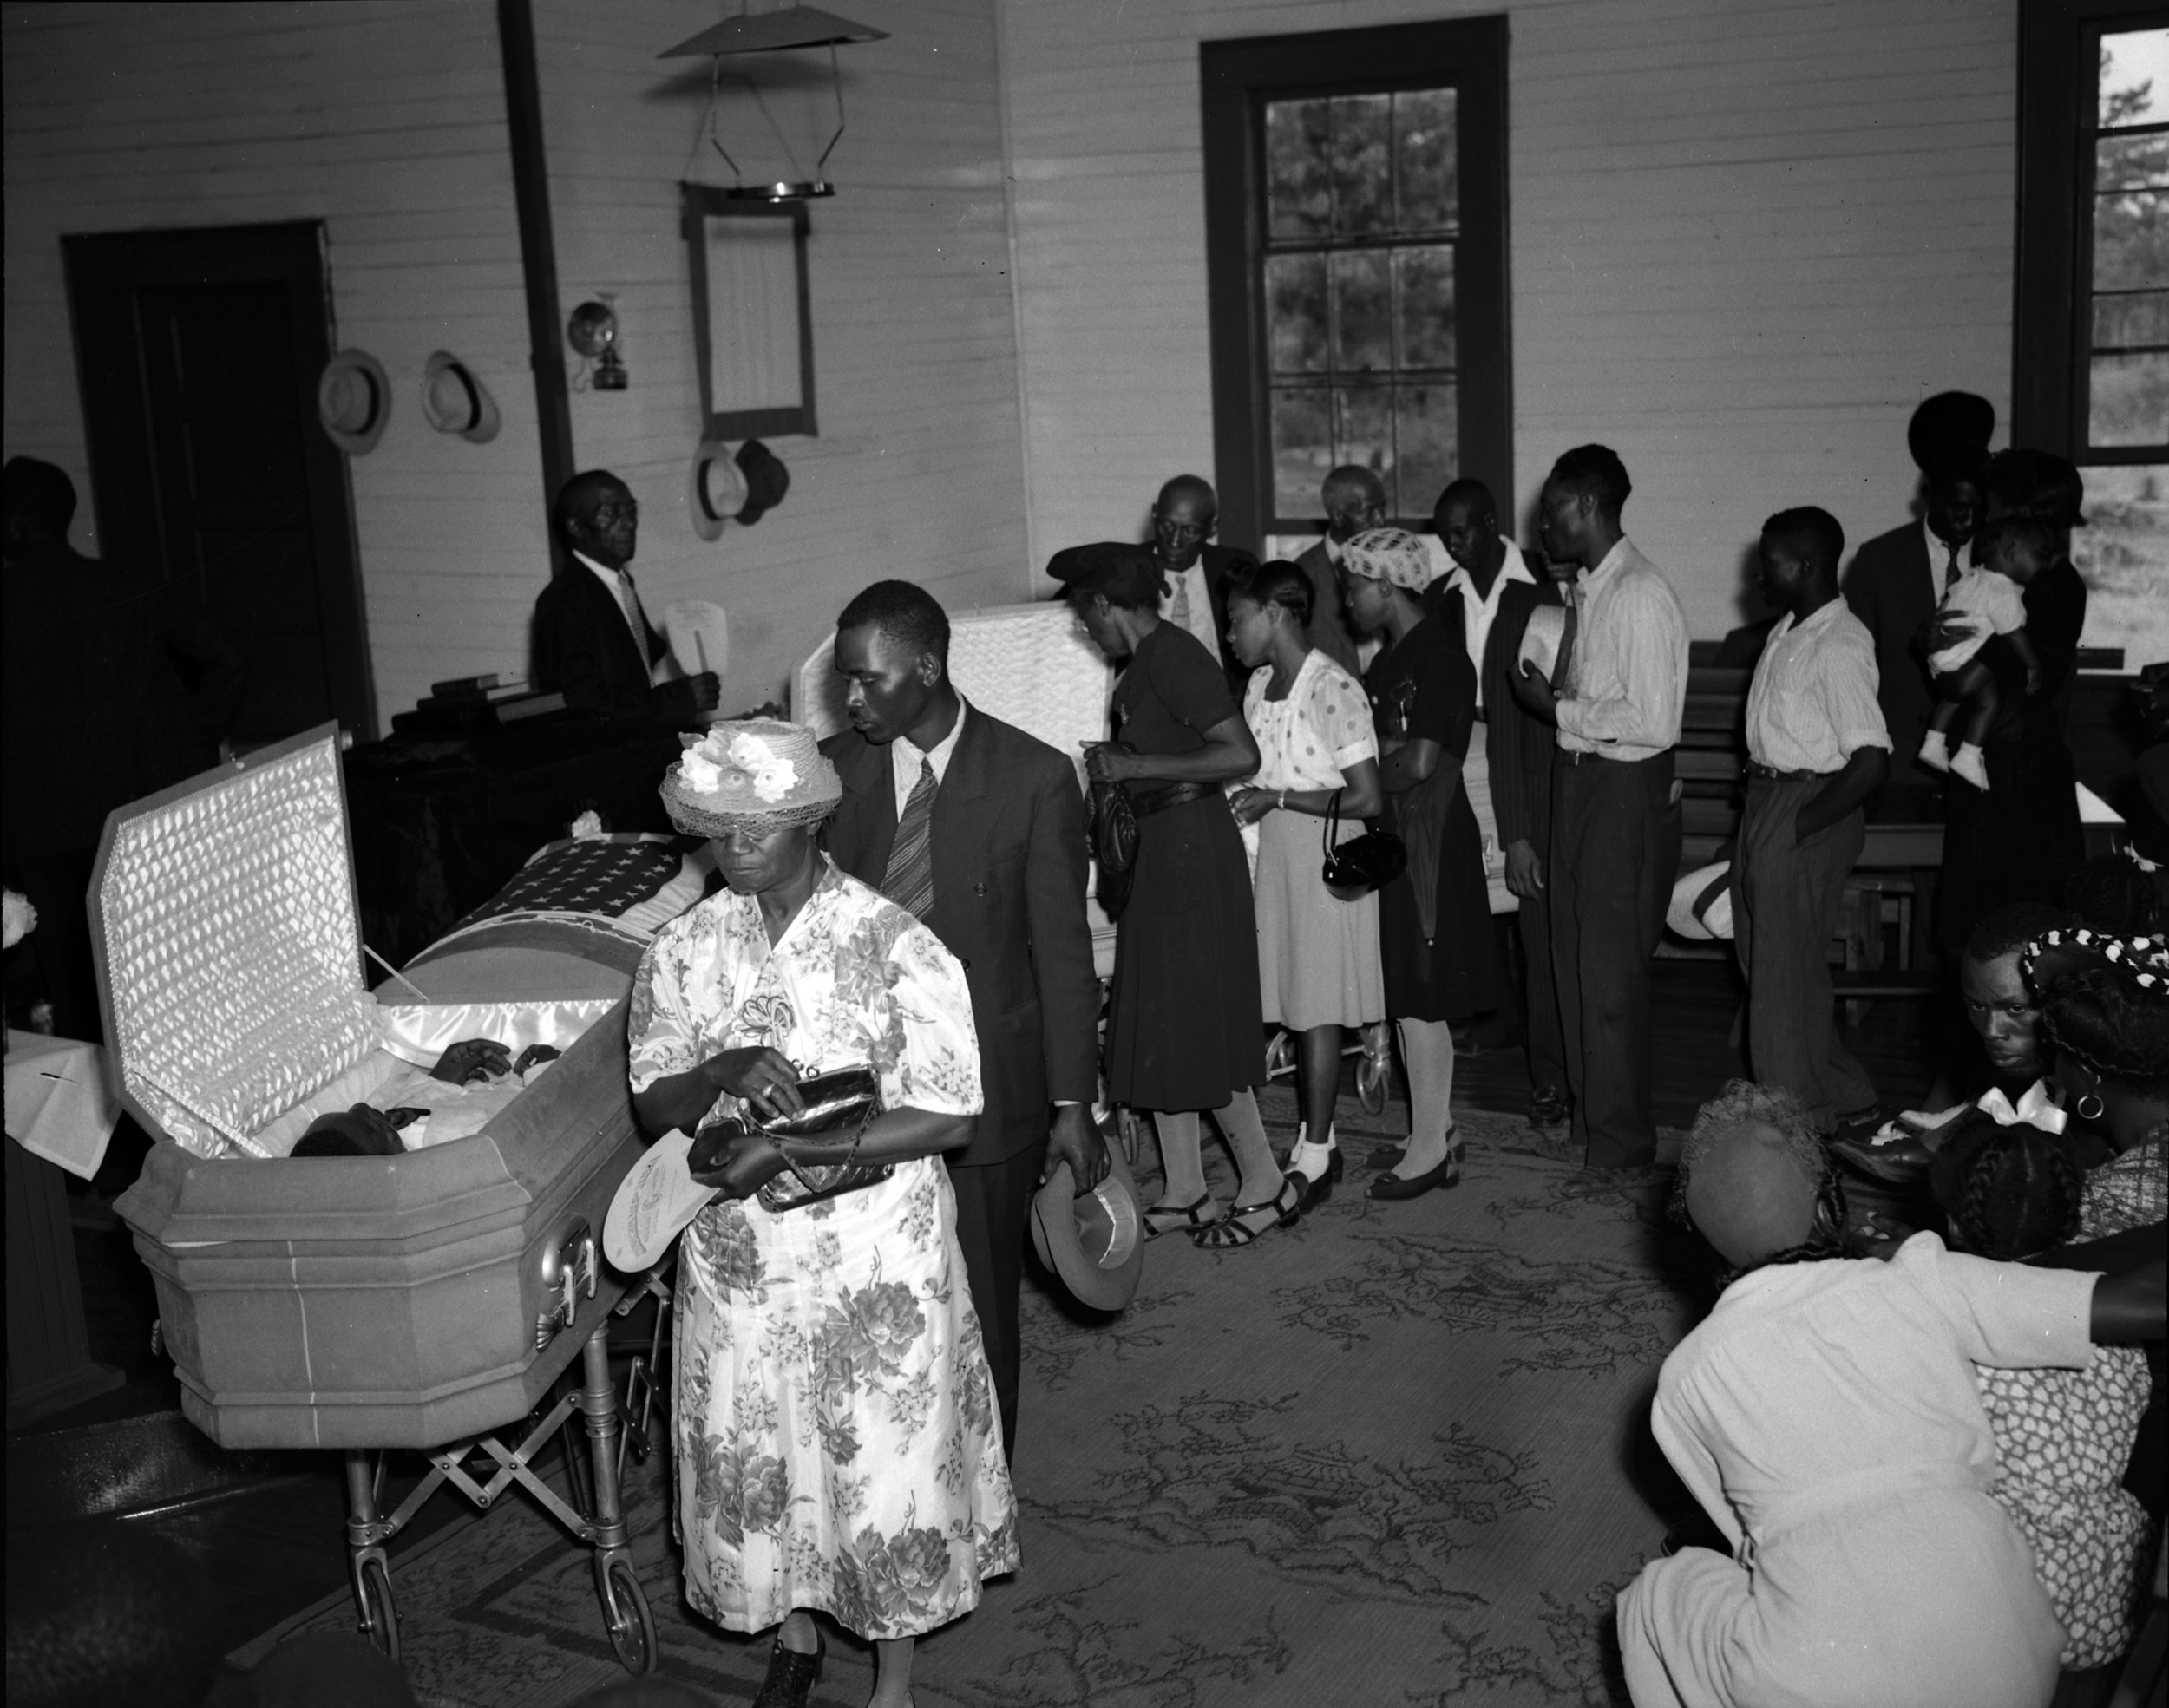 PAGE 22: ATLANTA NEWSPAPERS DID NOT SHY AWAY FROM BRINGING ATTENTION TO THE QUADRUPLE MURDER OF TWO BLACK COUPLES. PICTURED, MOURNERS ATTEND THE FUNERAL OF THE VICTIMS AT MOUNT PERY BAPTIST CHURCH IN BISHOP, GEORGIA (PERMISSION OF THE ASSOCIATED PRESS).